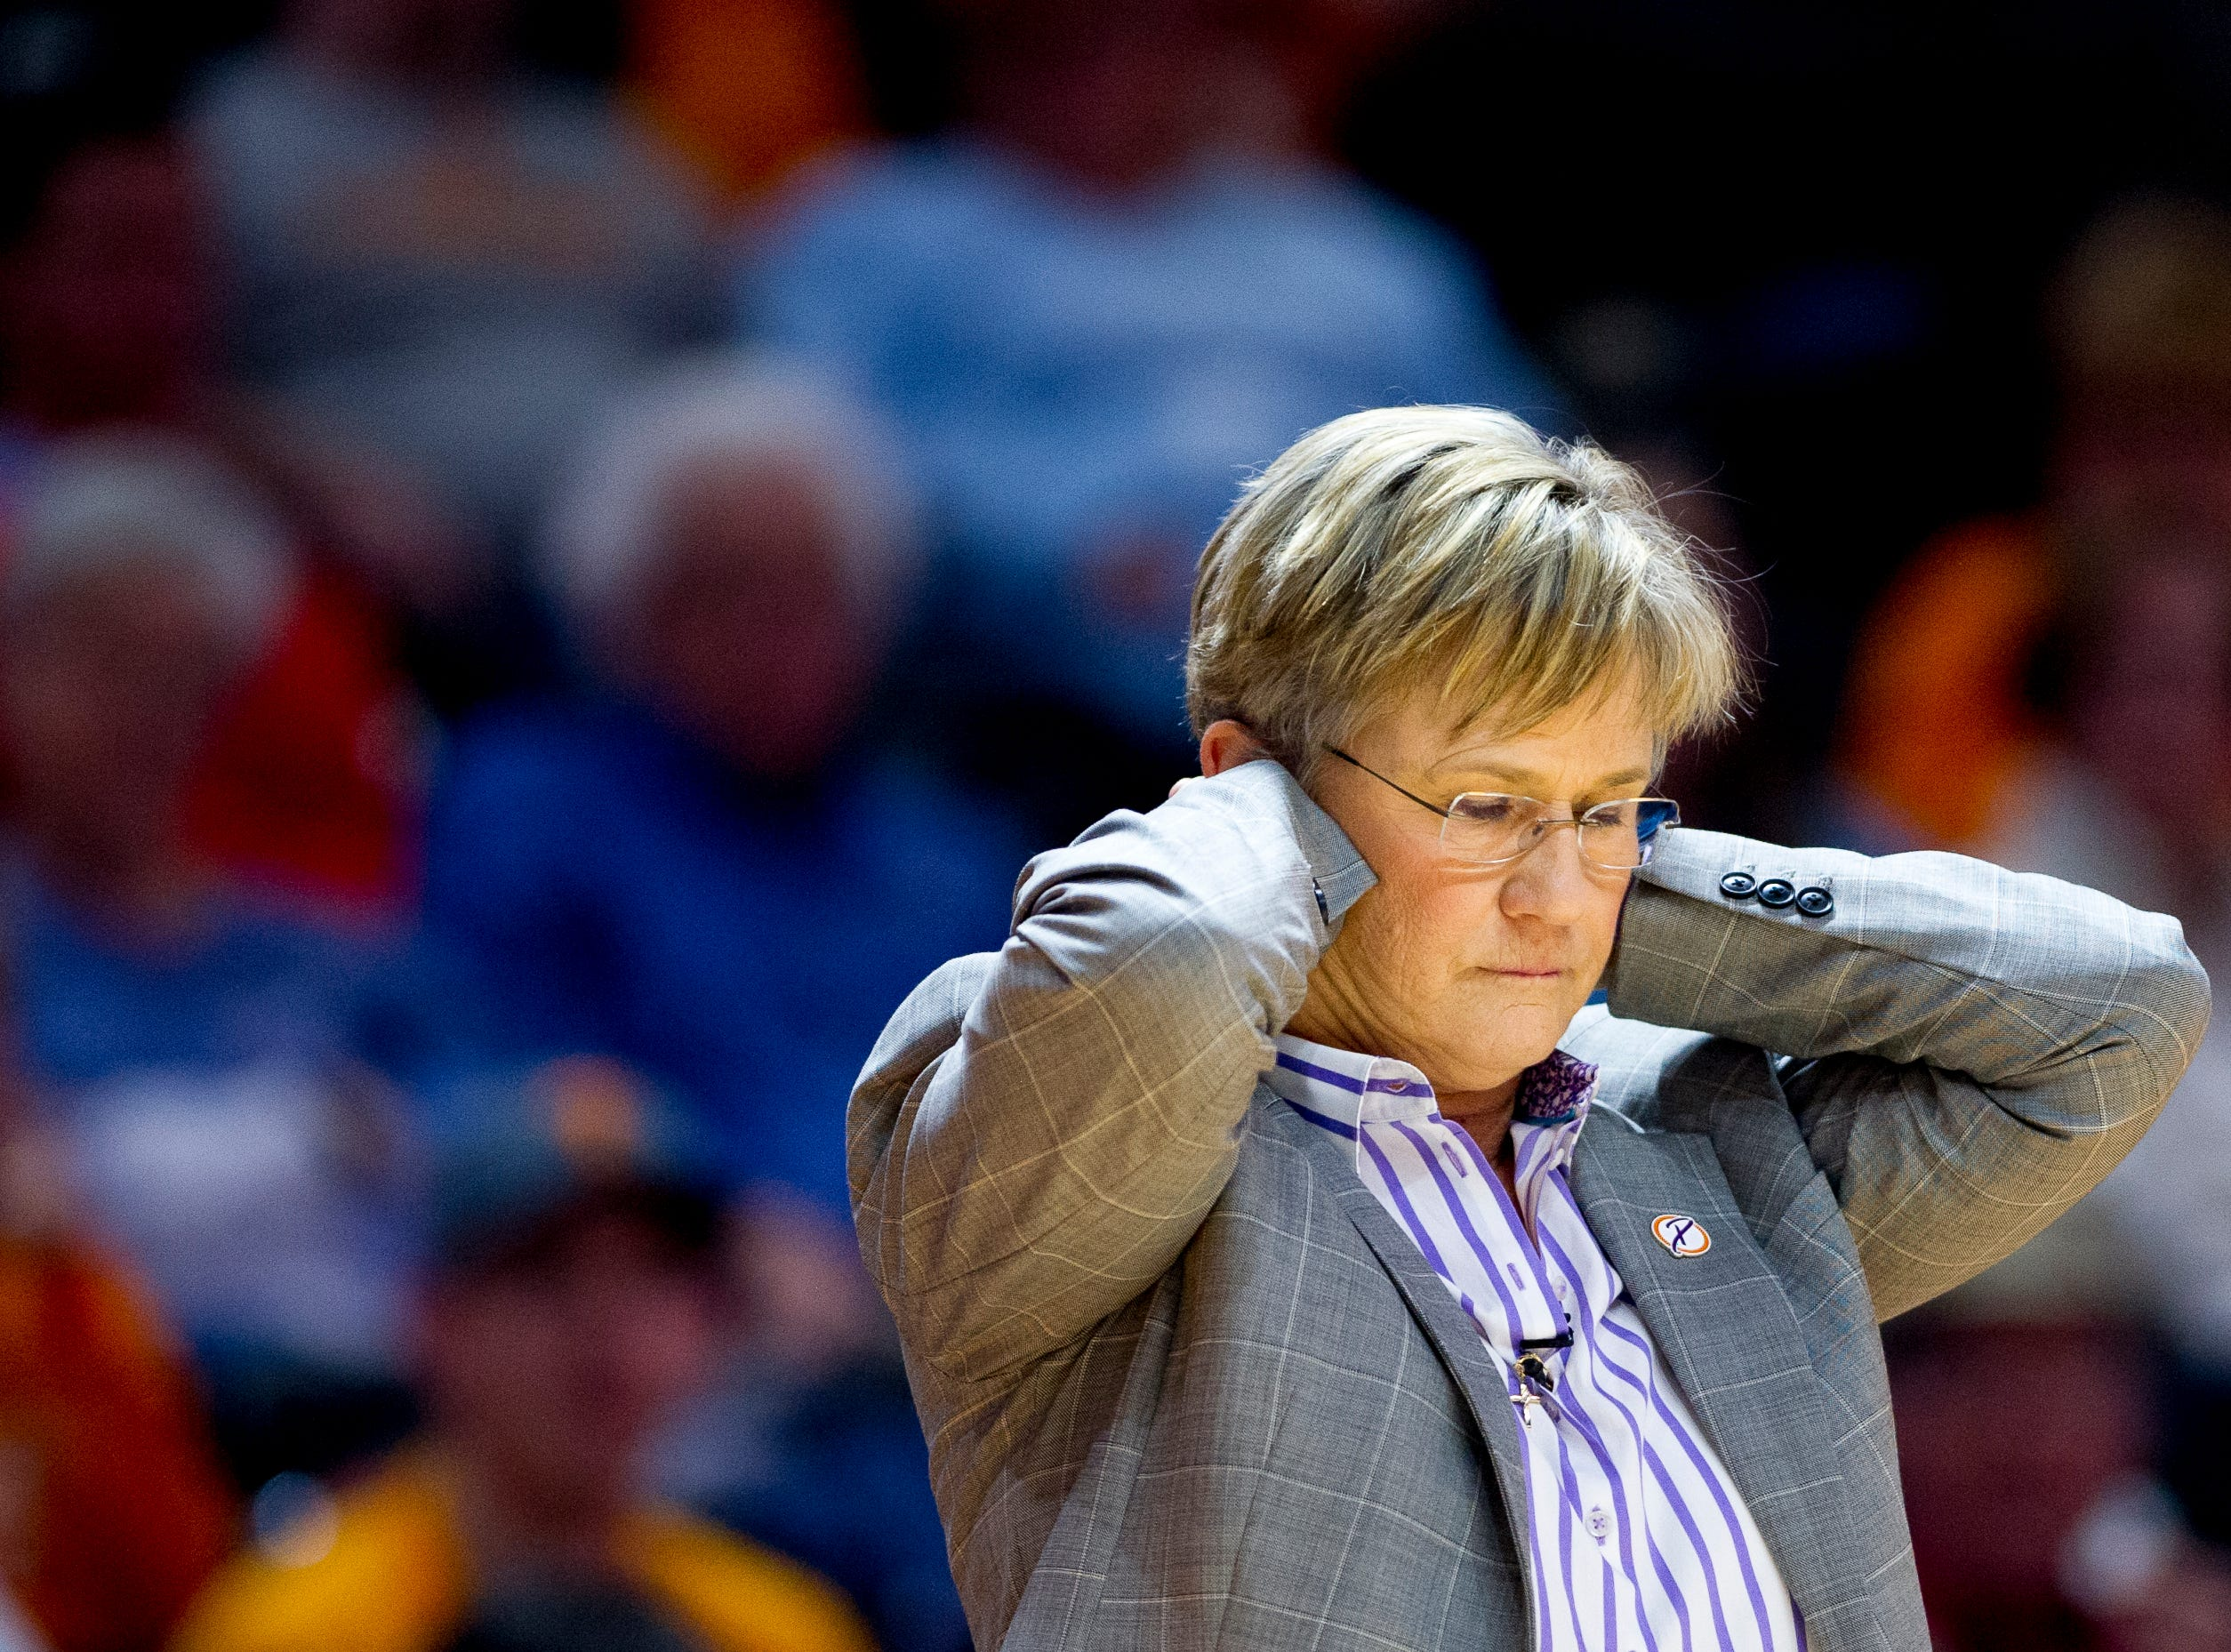 Tennessee Head Coach Holly Warlick reacts toward the end of the game during a game between Tennessee and Notre Dame at Thompson-Boling Arena in Knoxville, Tennessee on Thursday, January 24, 2019.